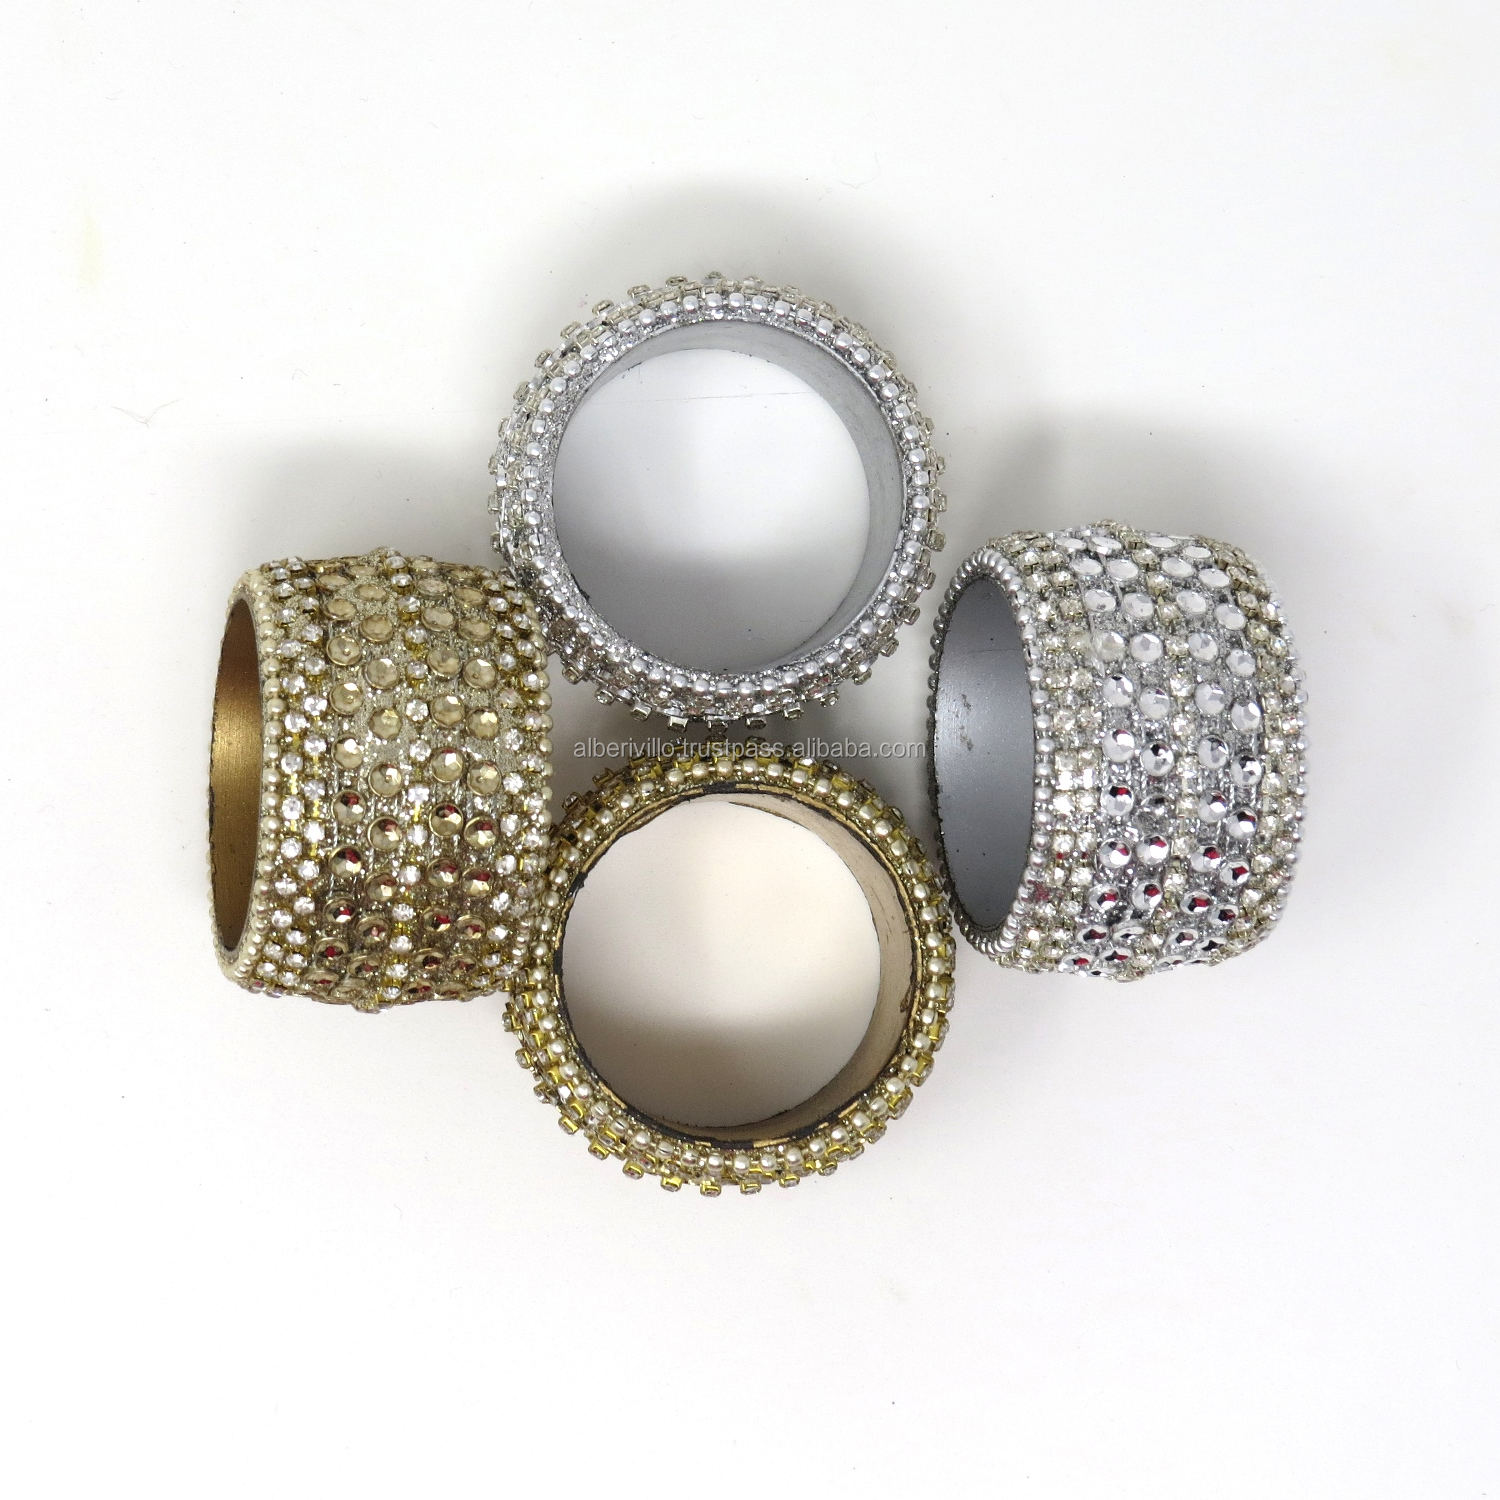 Wholesale Set of 4 Round Beaded Napkin Ring Holders Indian Handicrafts